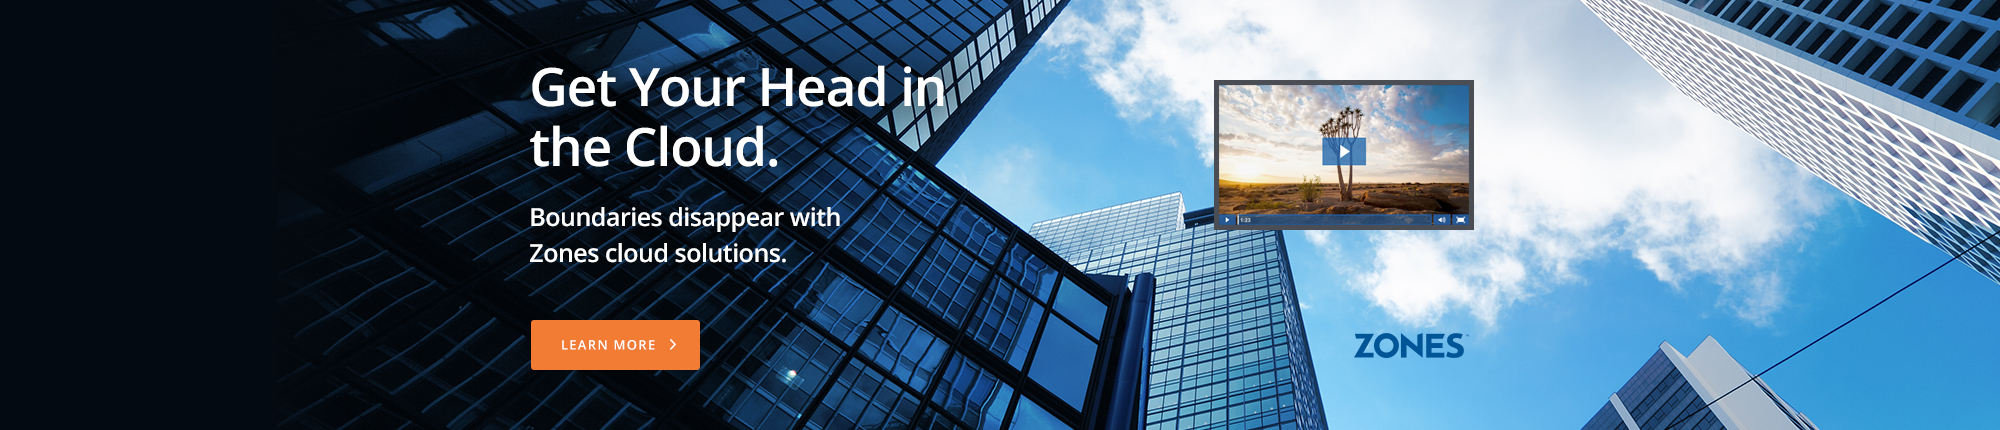 Get Your Head in the Cloud. Boundaries disappear with Zones cloud solutions.